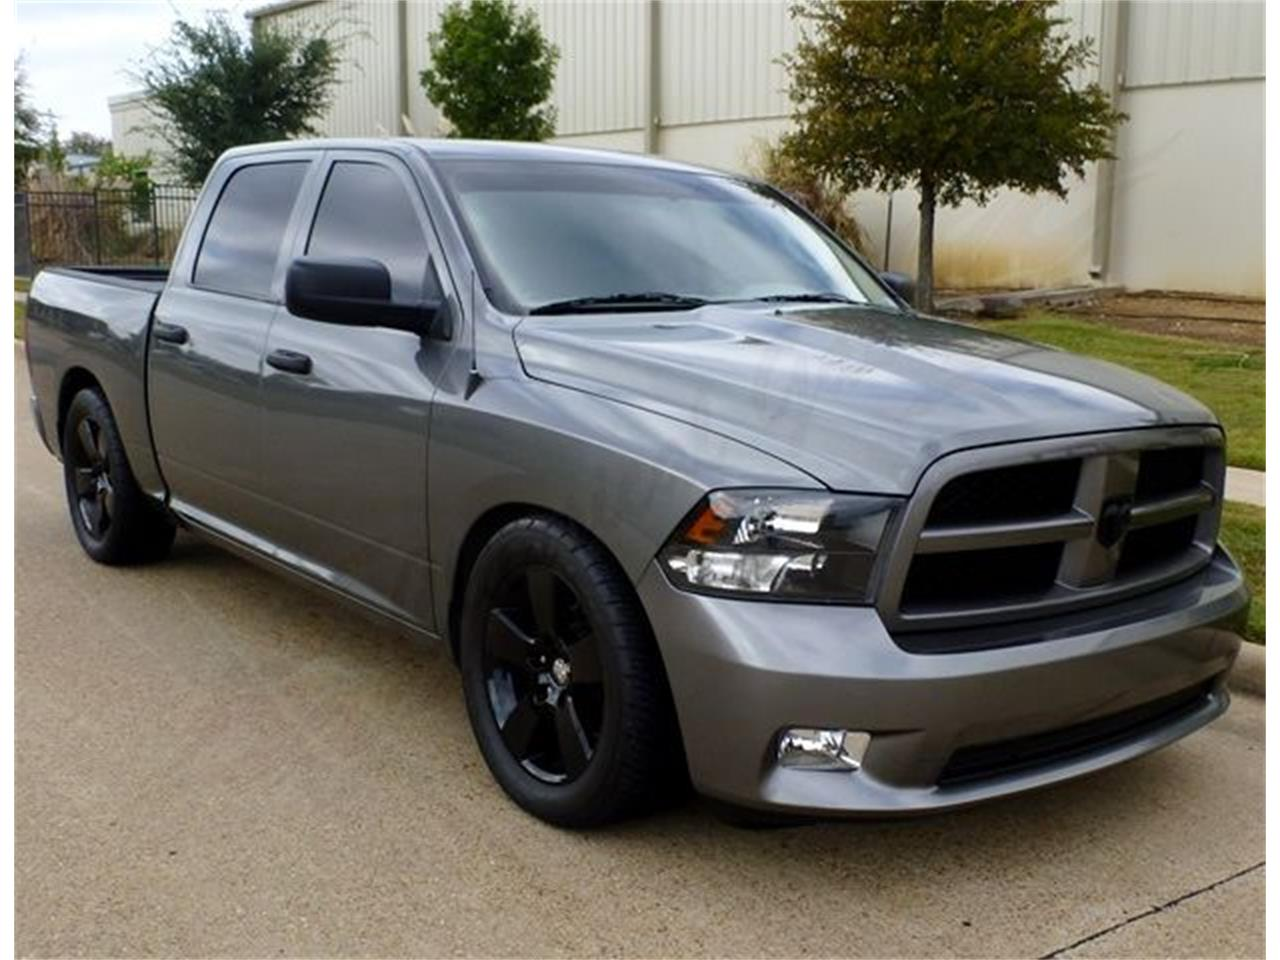 Dodge Dealership Arlington Tx >> For Sale 2012 Dodge Ram In Arlington Texas